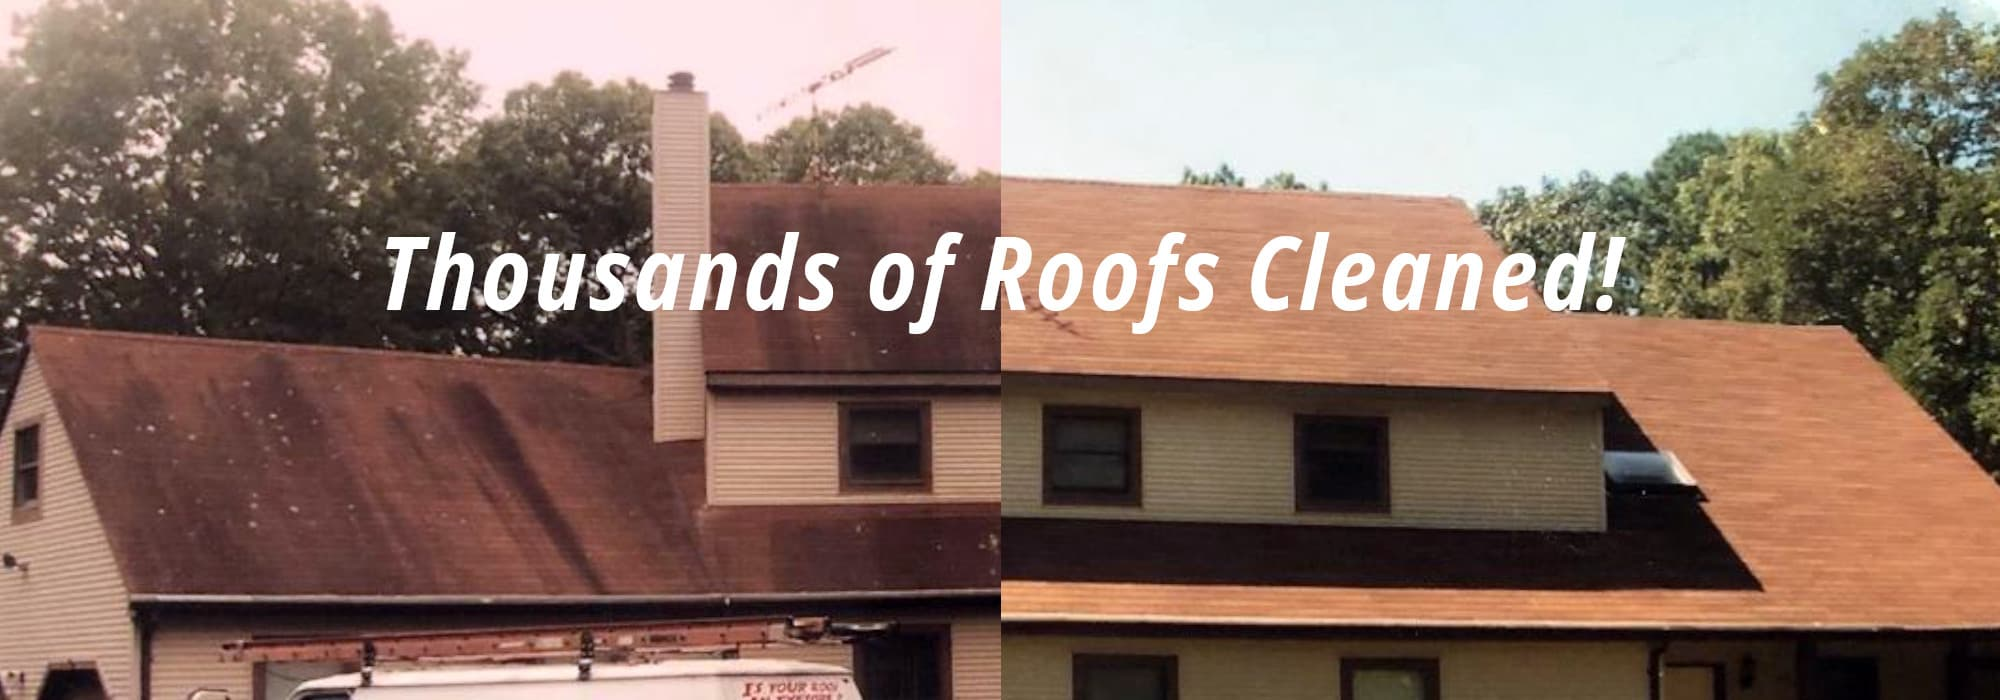 Charlie's Roof cleaning,Inc reviews | 35 Oakwood Ave - Bayport NY